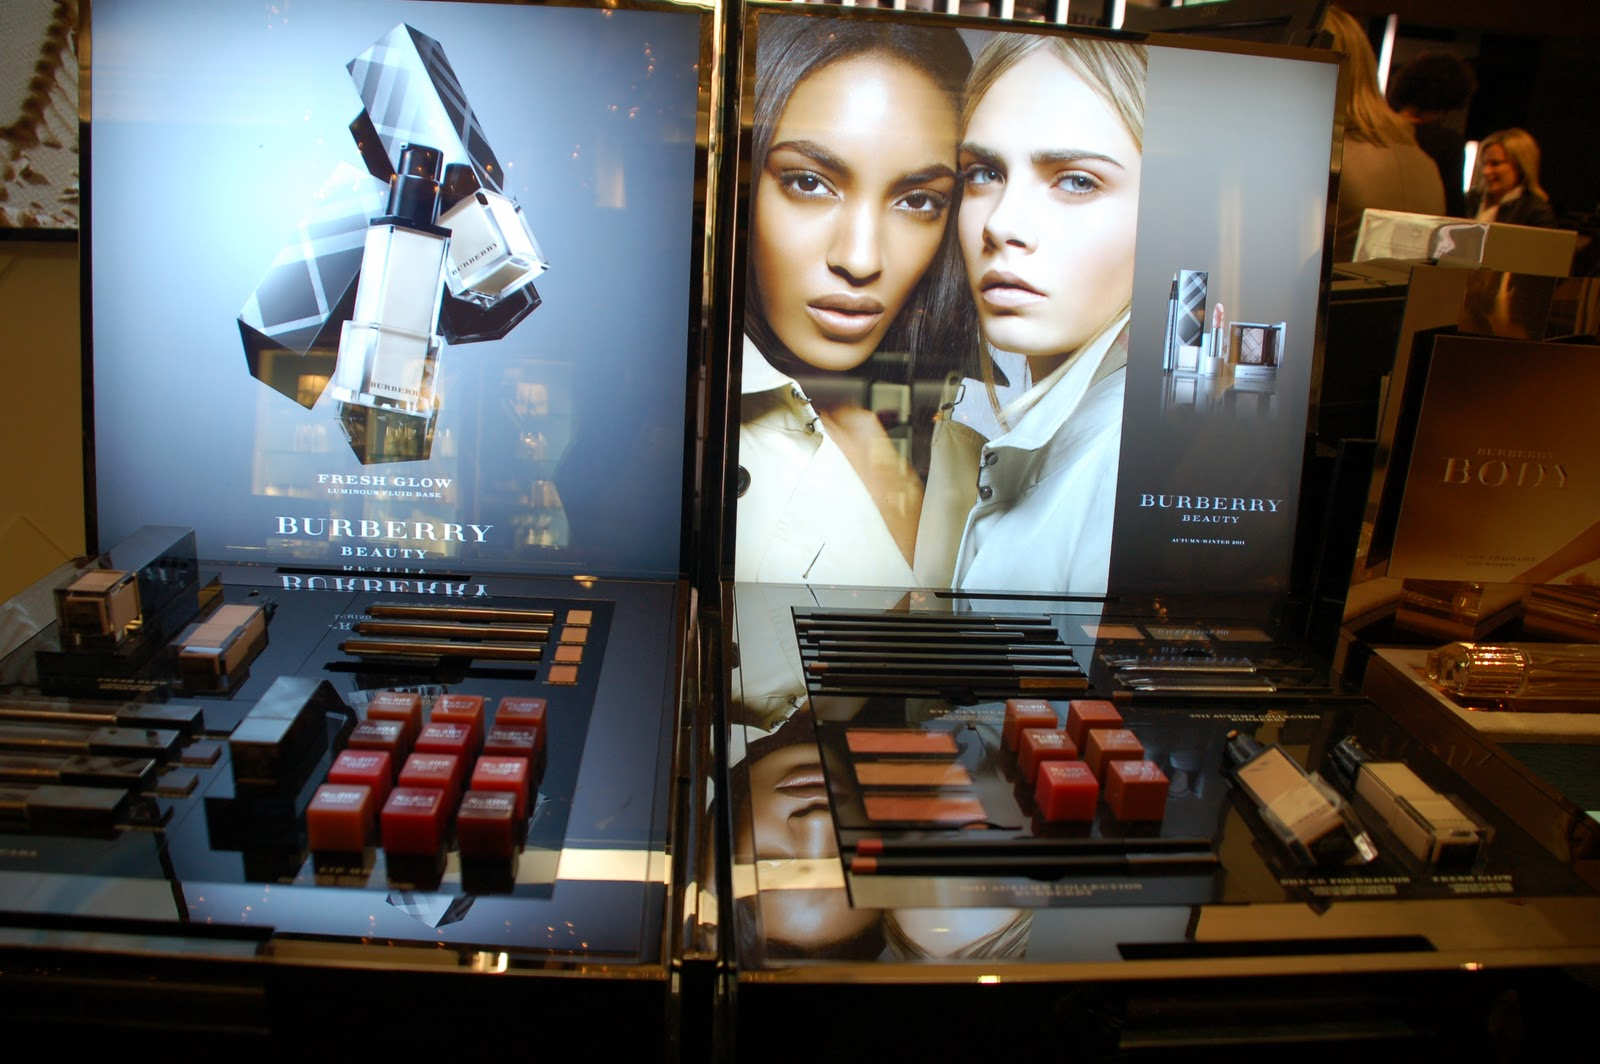 visit to the brand spanking new Burberry counter at Saks Fifth Avenue